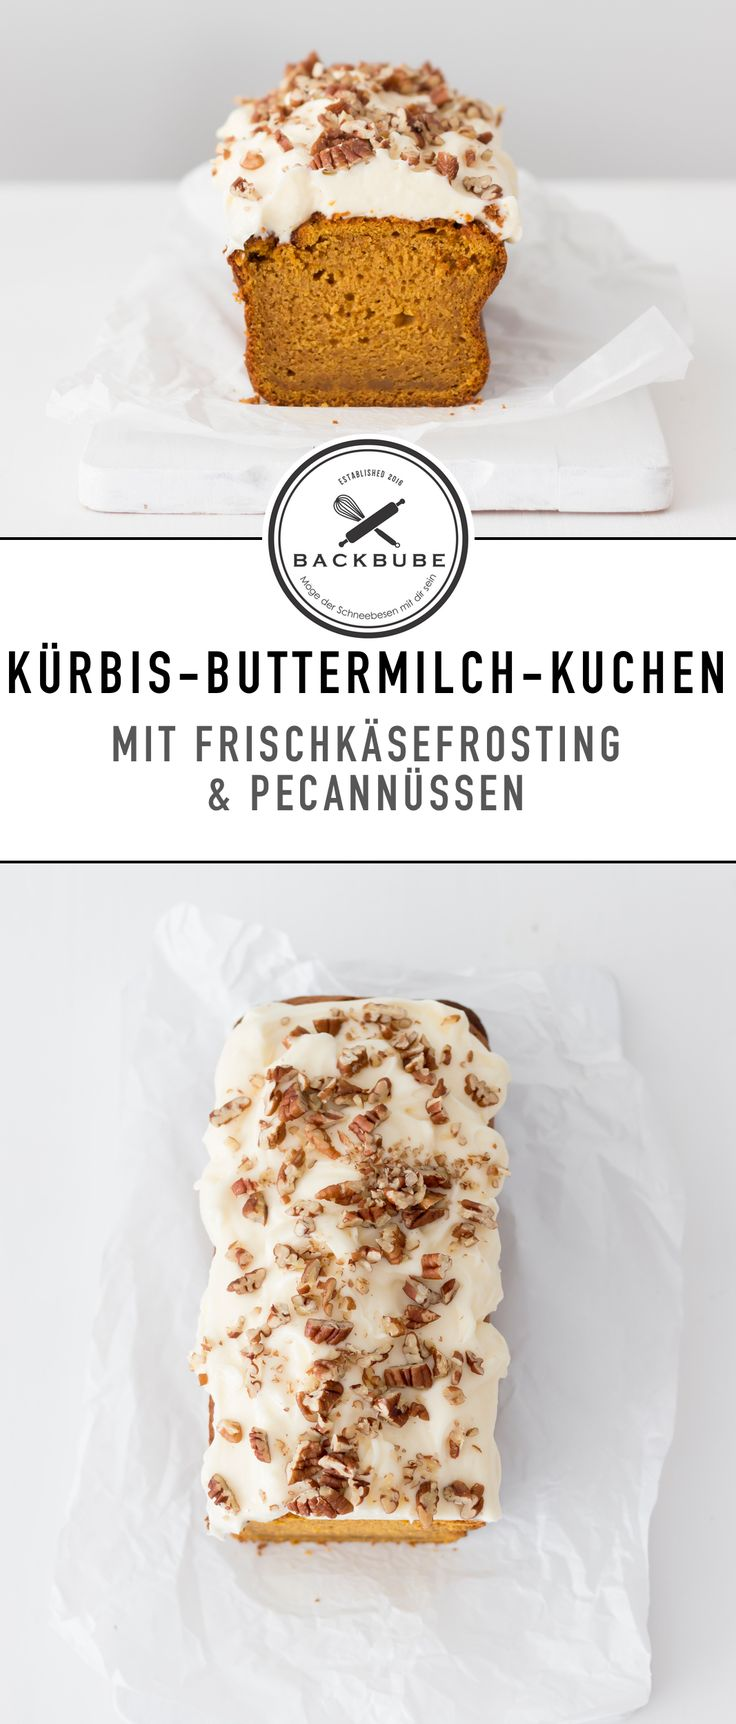 Kürbis-Buttermilchkuchen mit Frischkäsefrosting und Pecannüssen / pumpkin buttermilk cake with cream cheese frosting and pecans / www.backbube.com - Foodblog